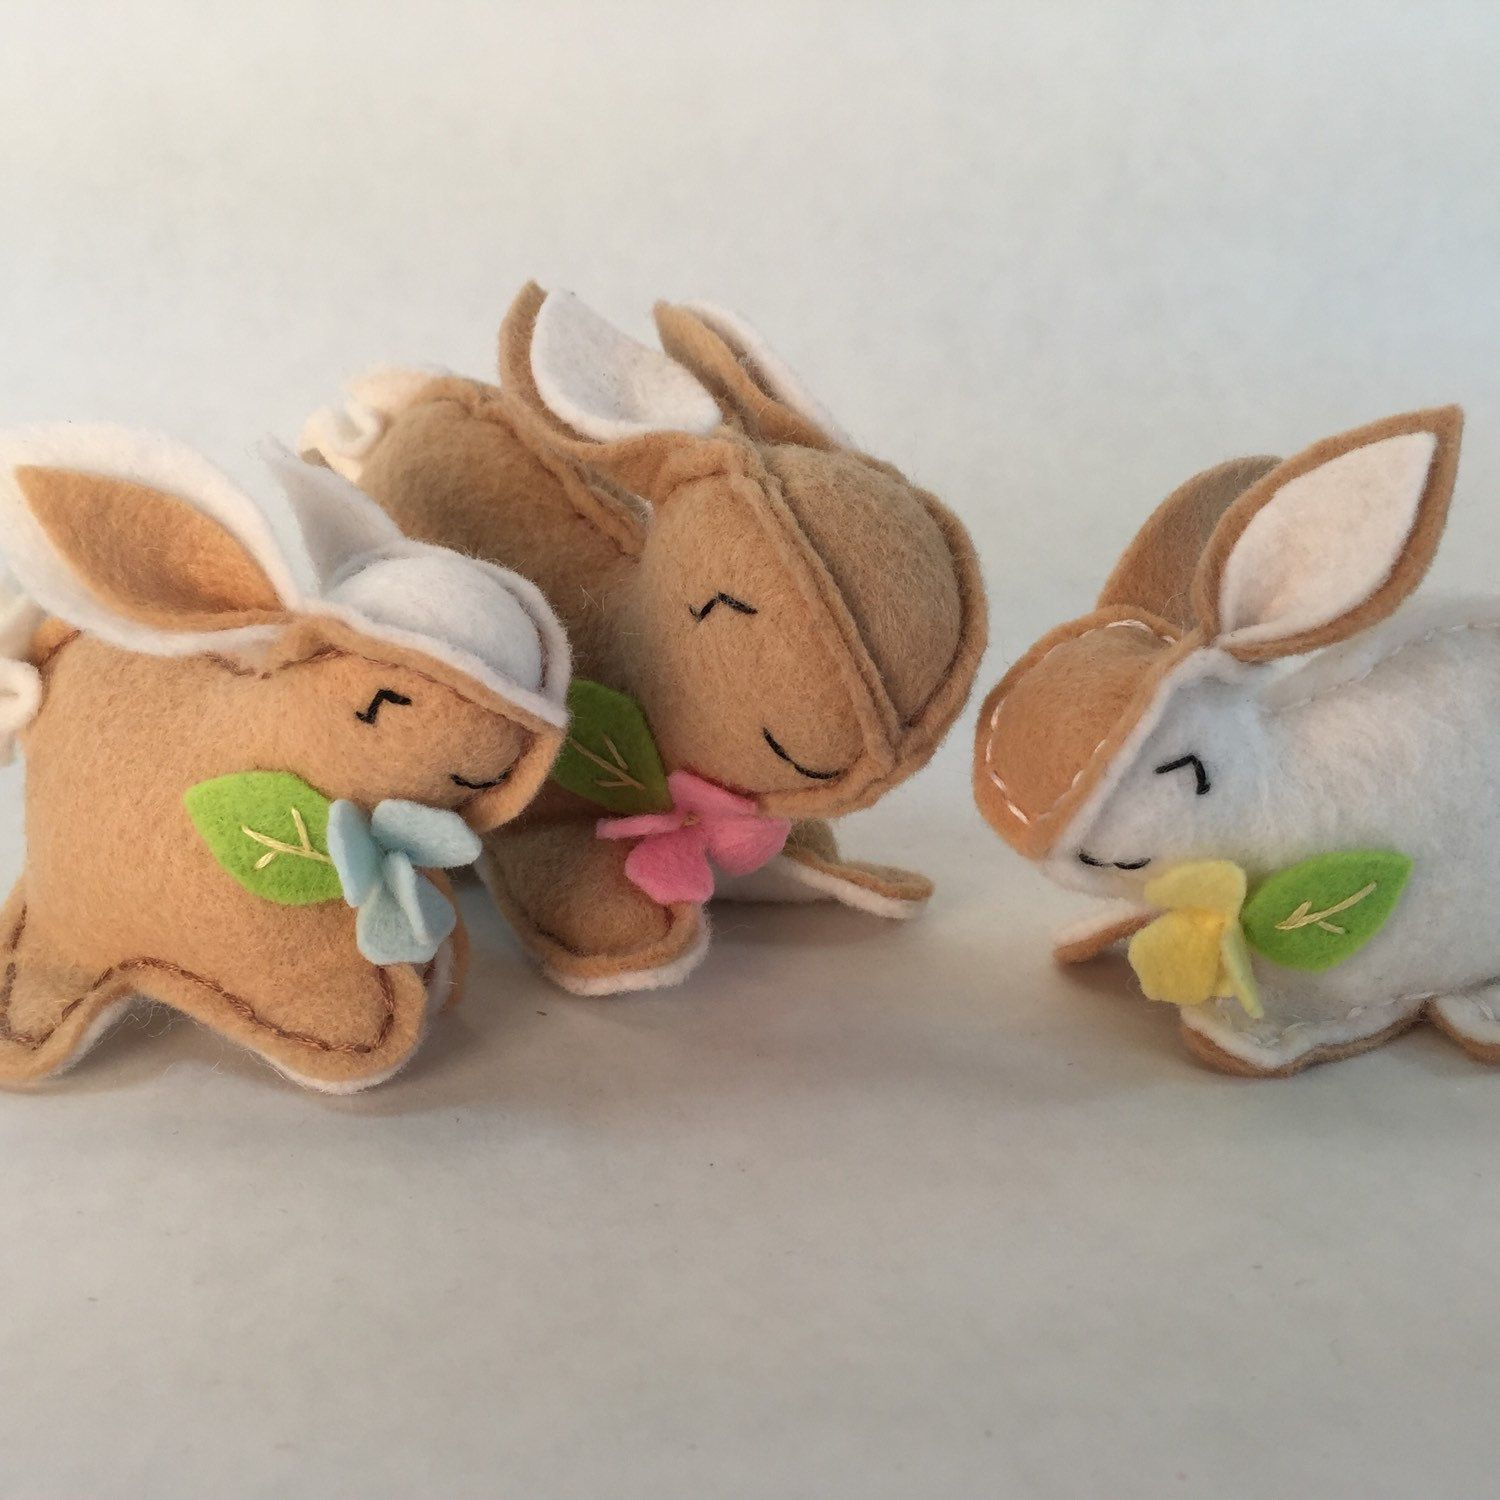 It's bunny time. Hop to it and get stitching! DIY sewing kit includes everything you need to make mama bunny and her two babies.